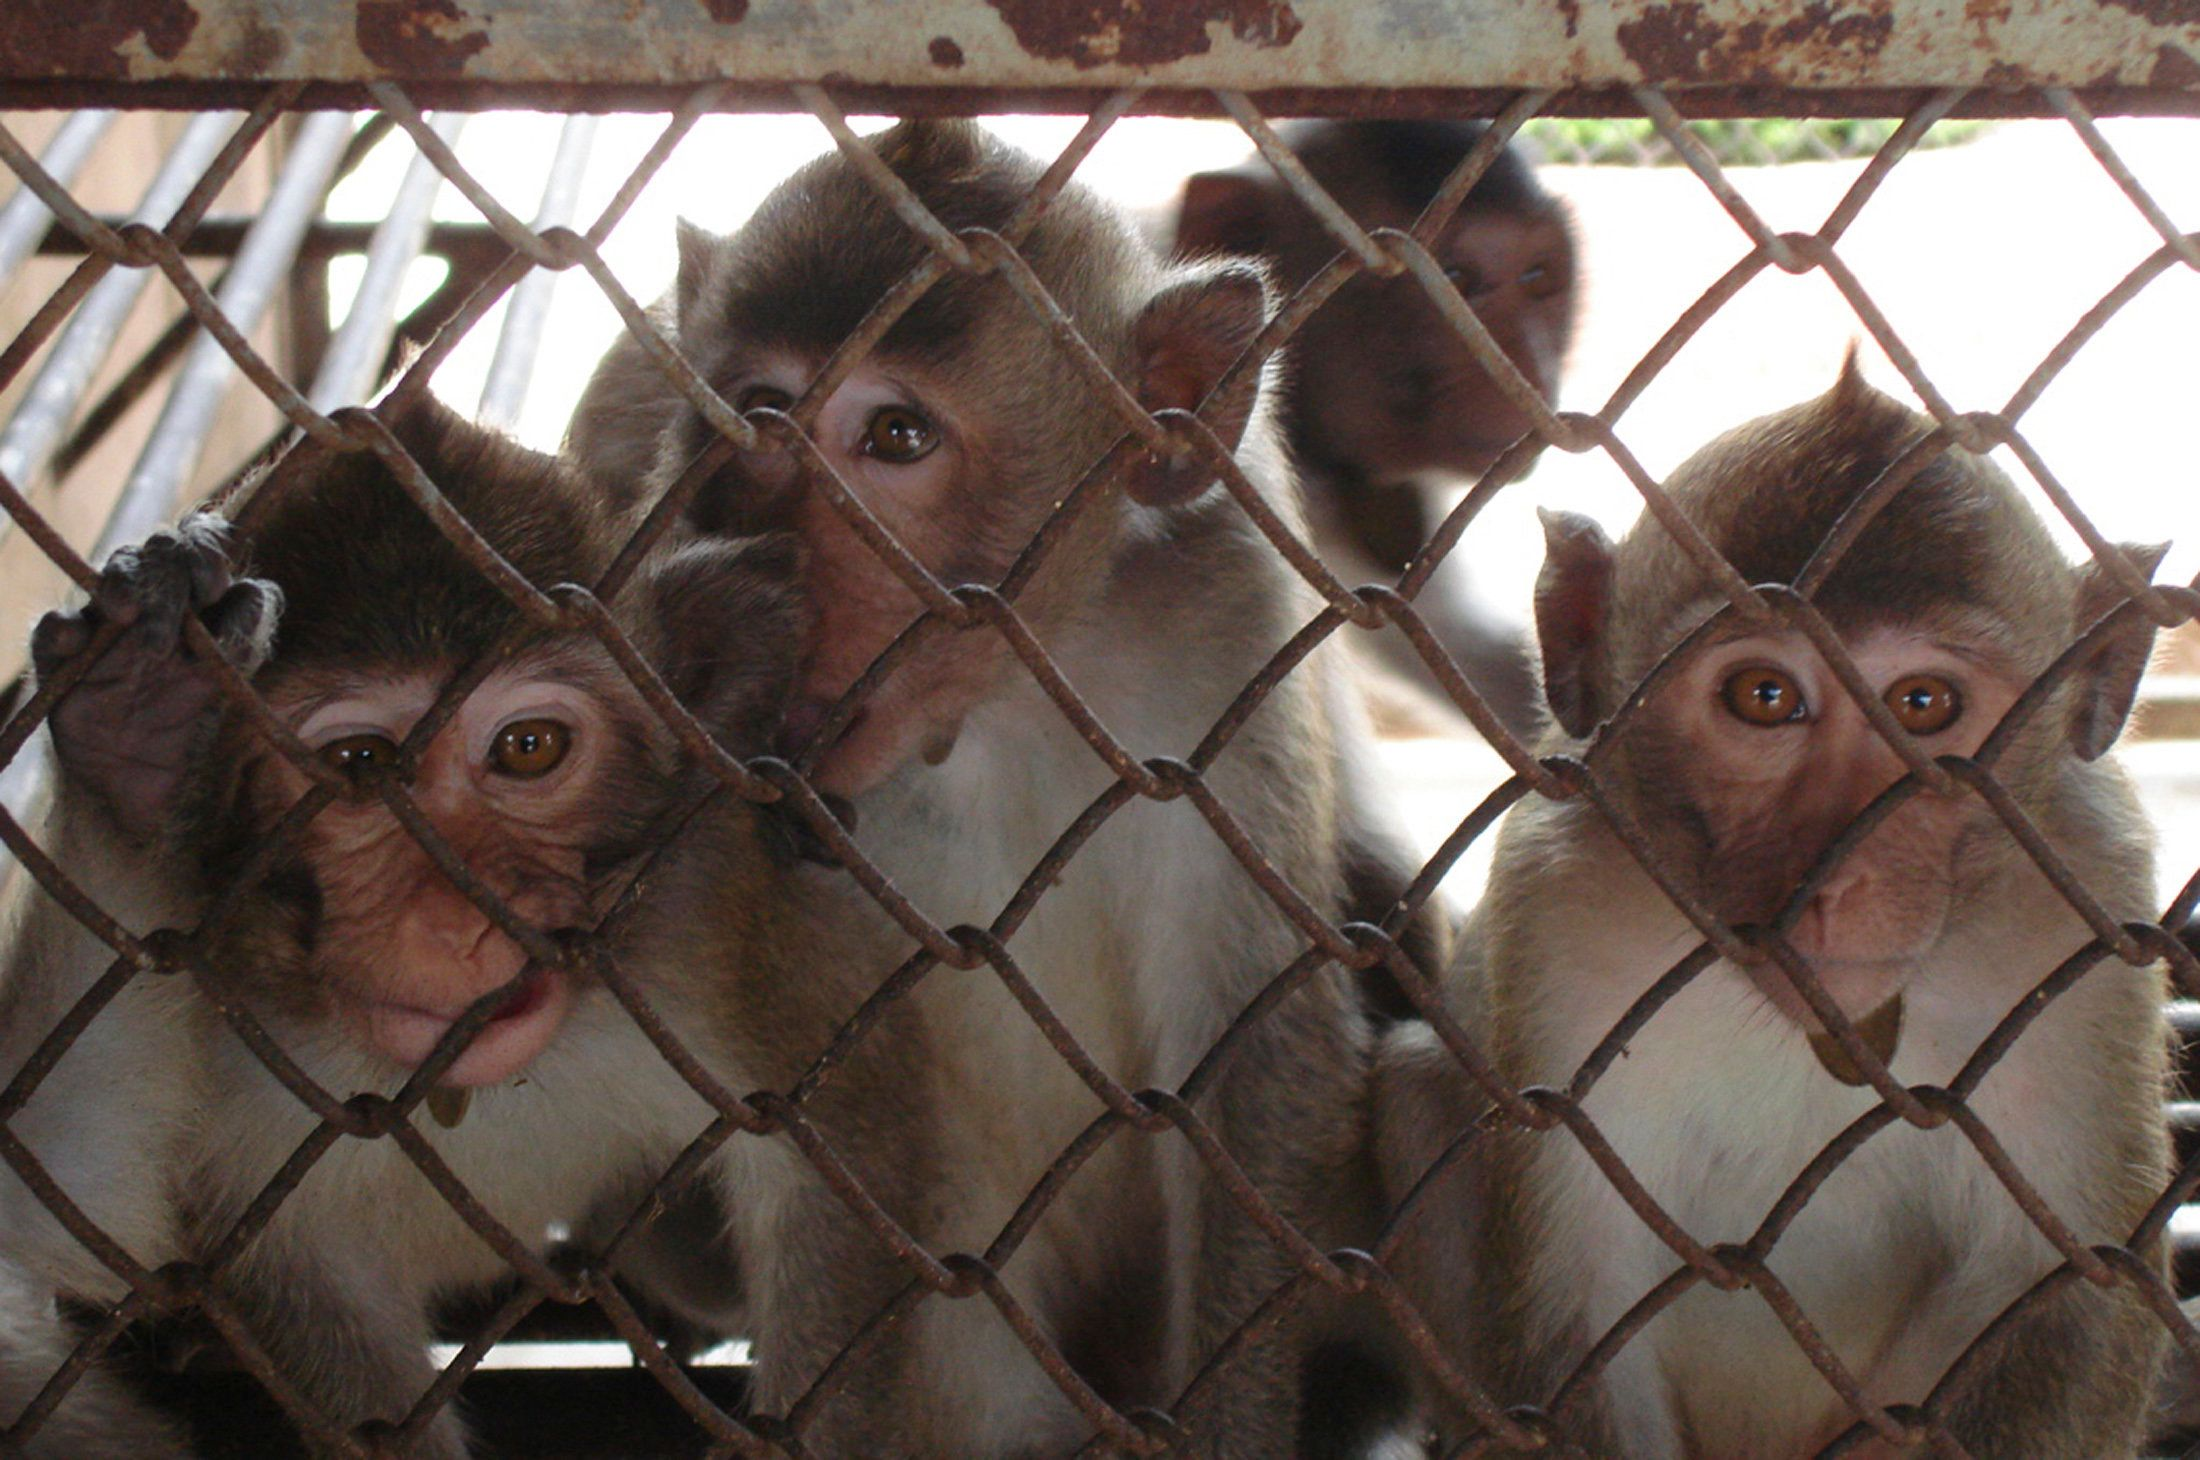 The animals used in the experiment in New Mexico were cynomolgus macaque monkeys. Similar ones are seen here.